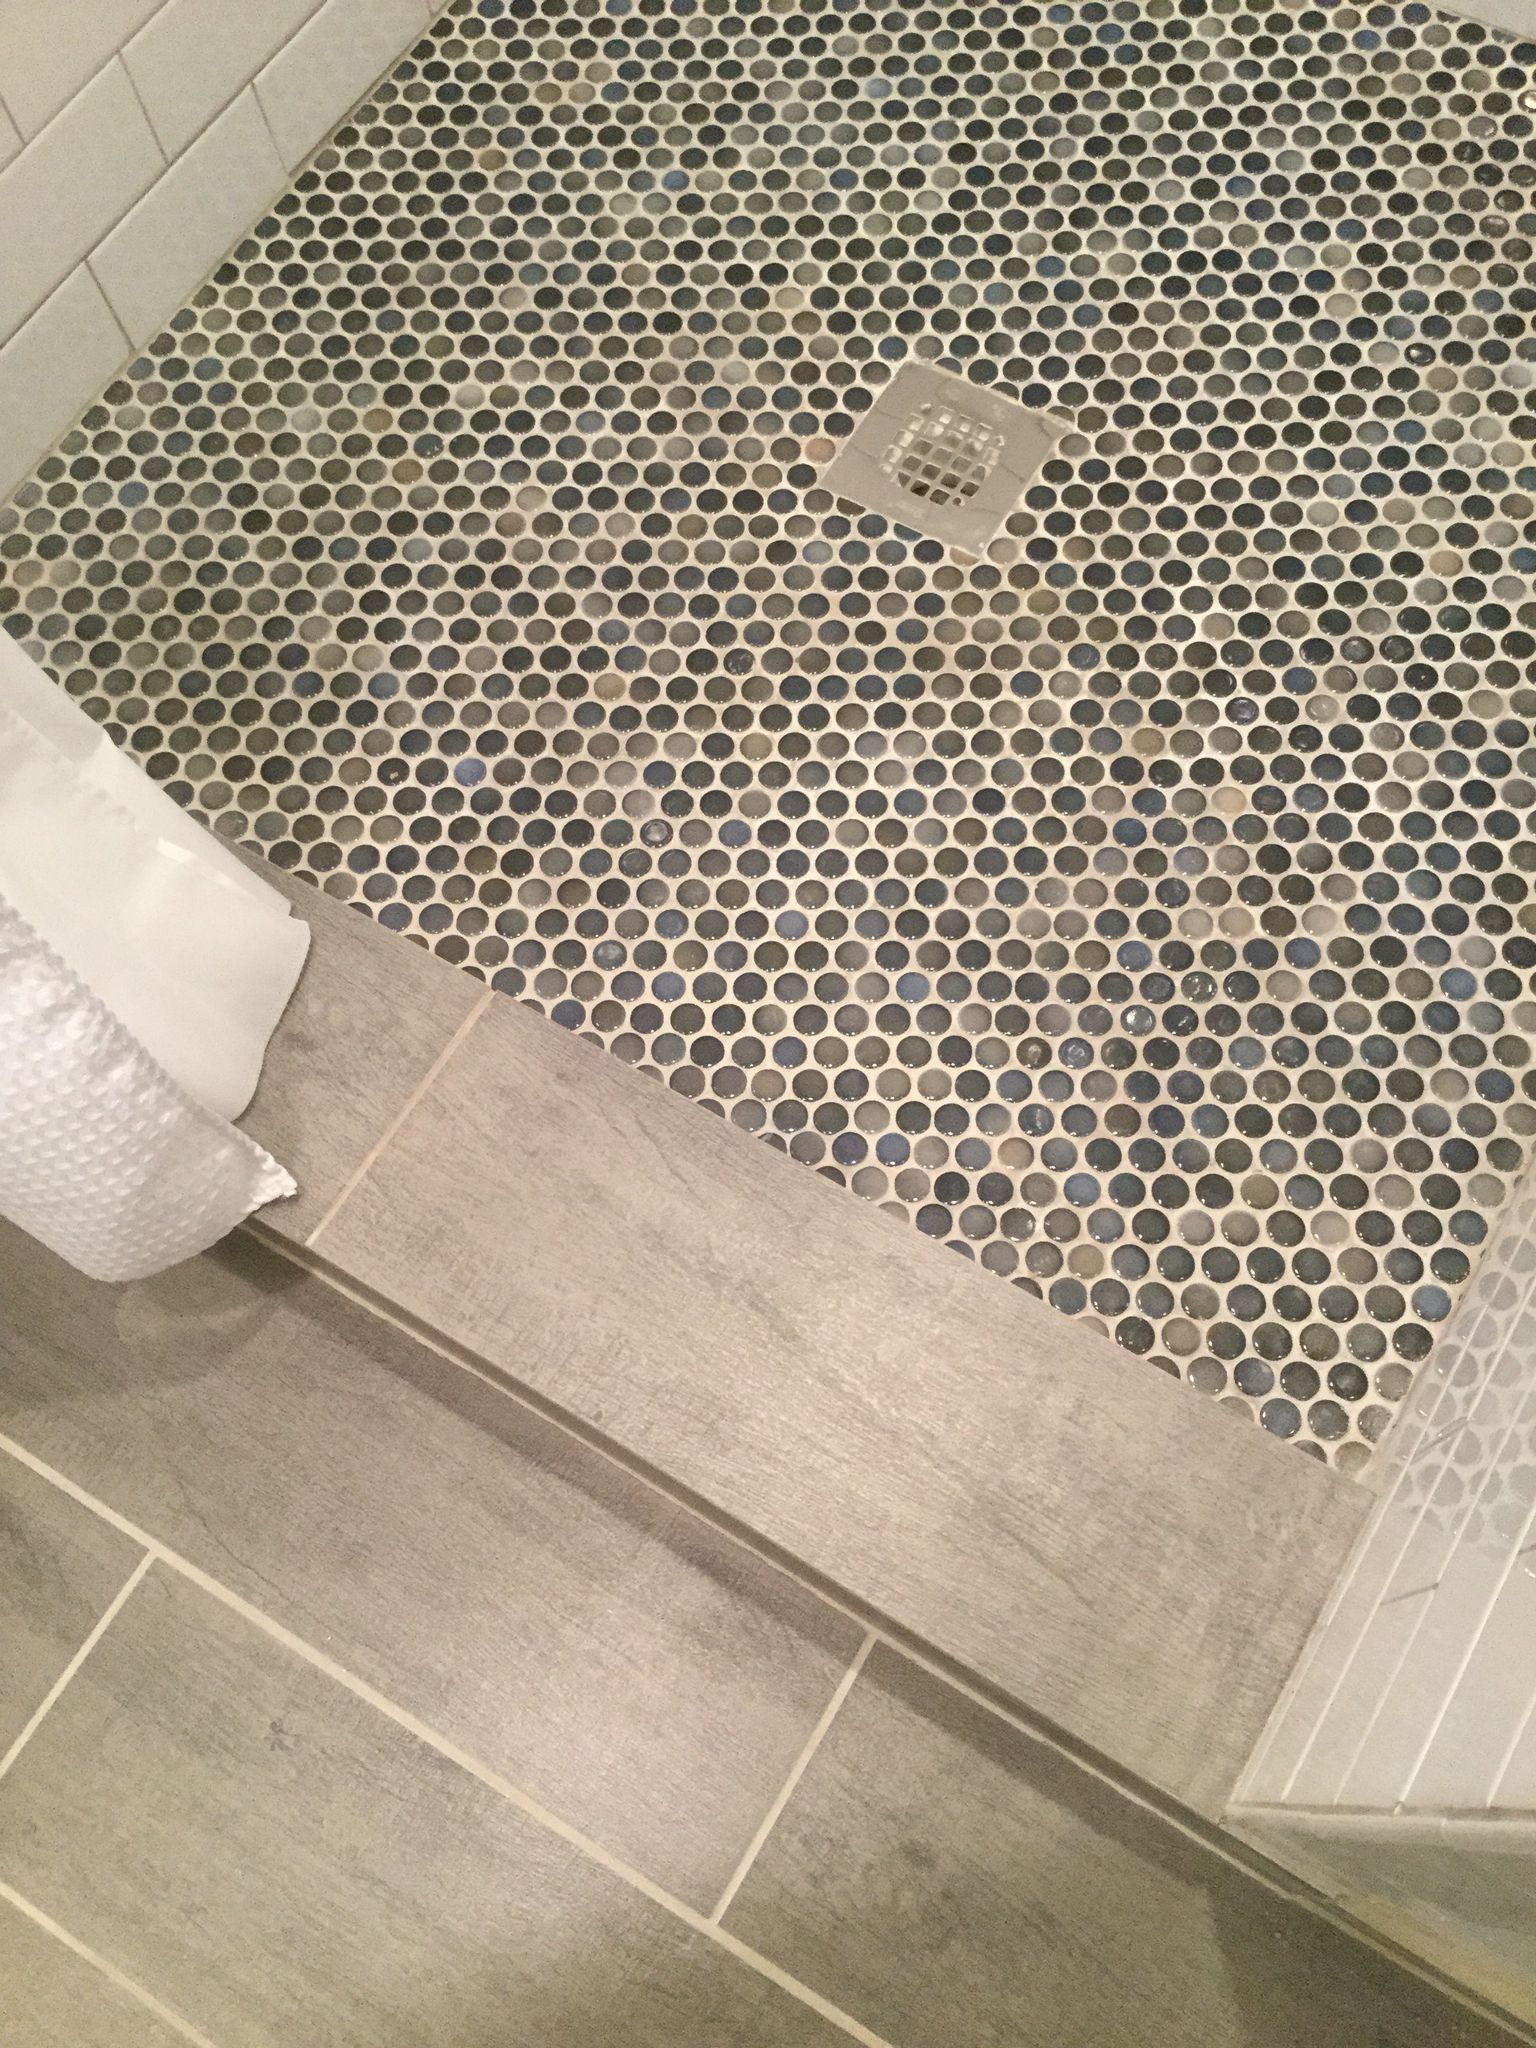 Blue And Gray Penny Tile On Shower Floor Penny Tile